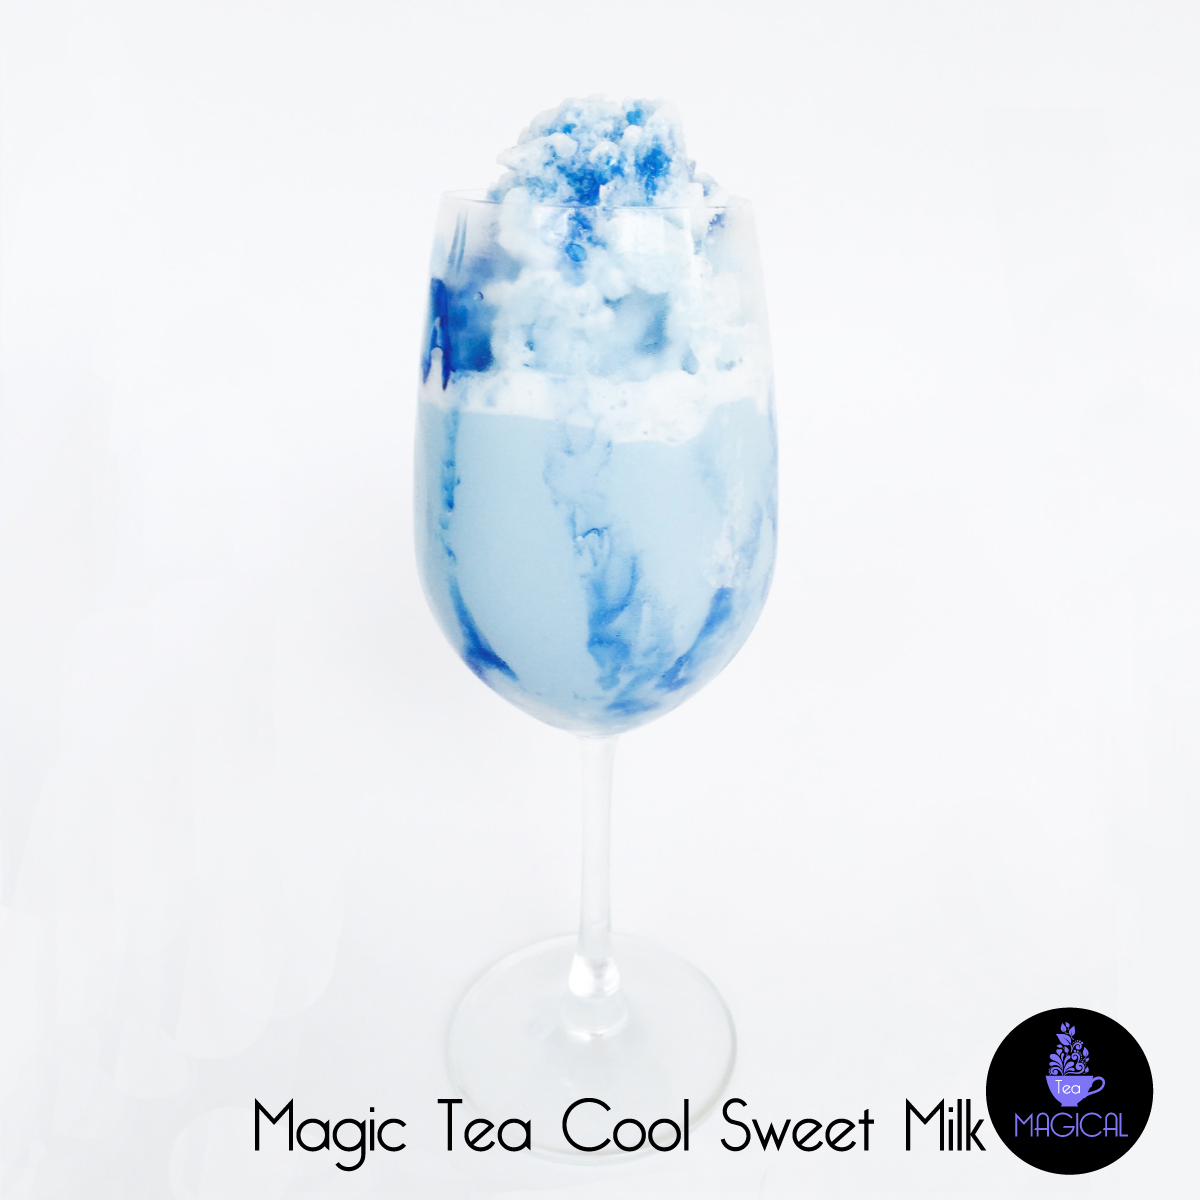 Magic Tea Cool sweet milk